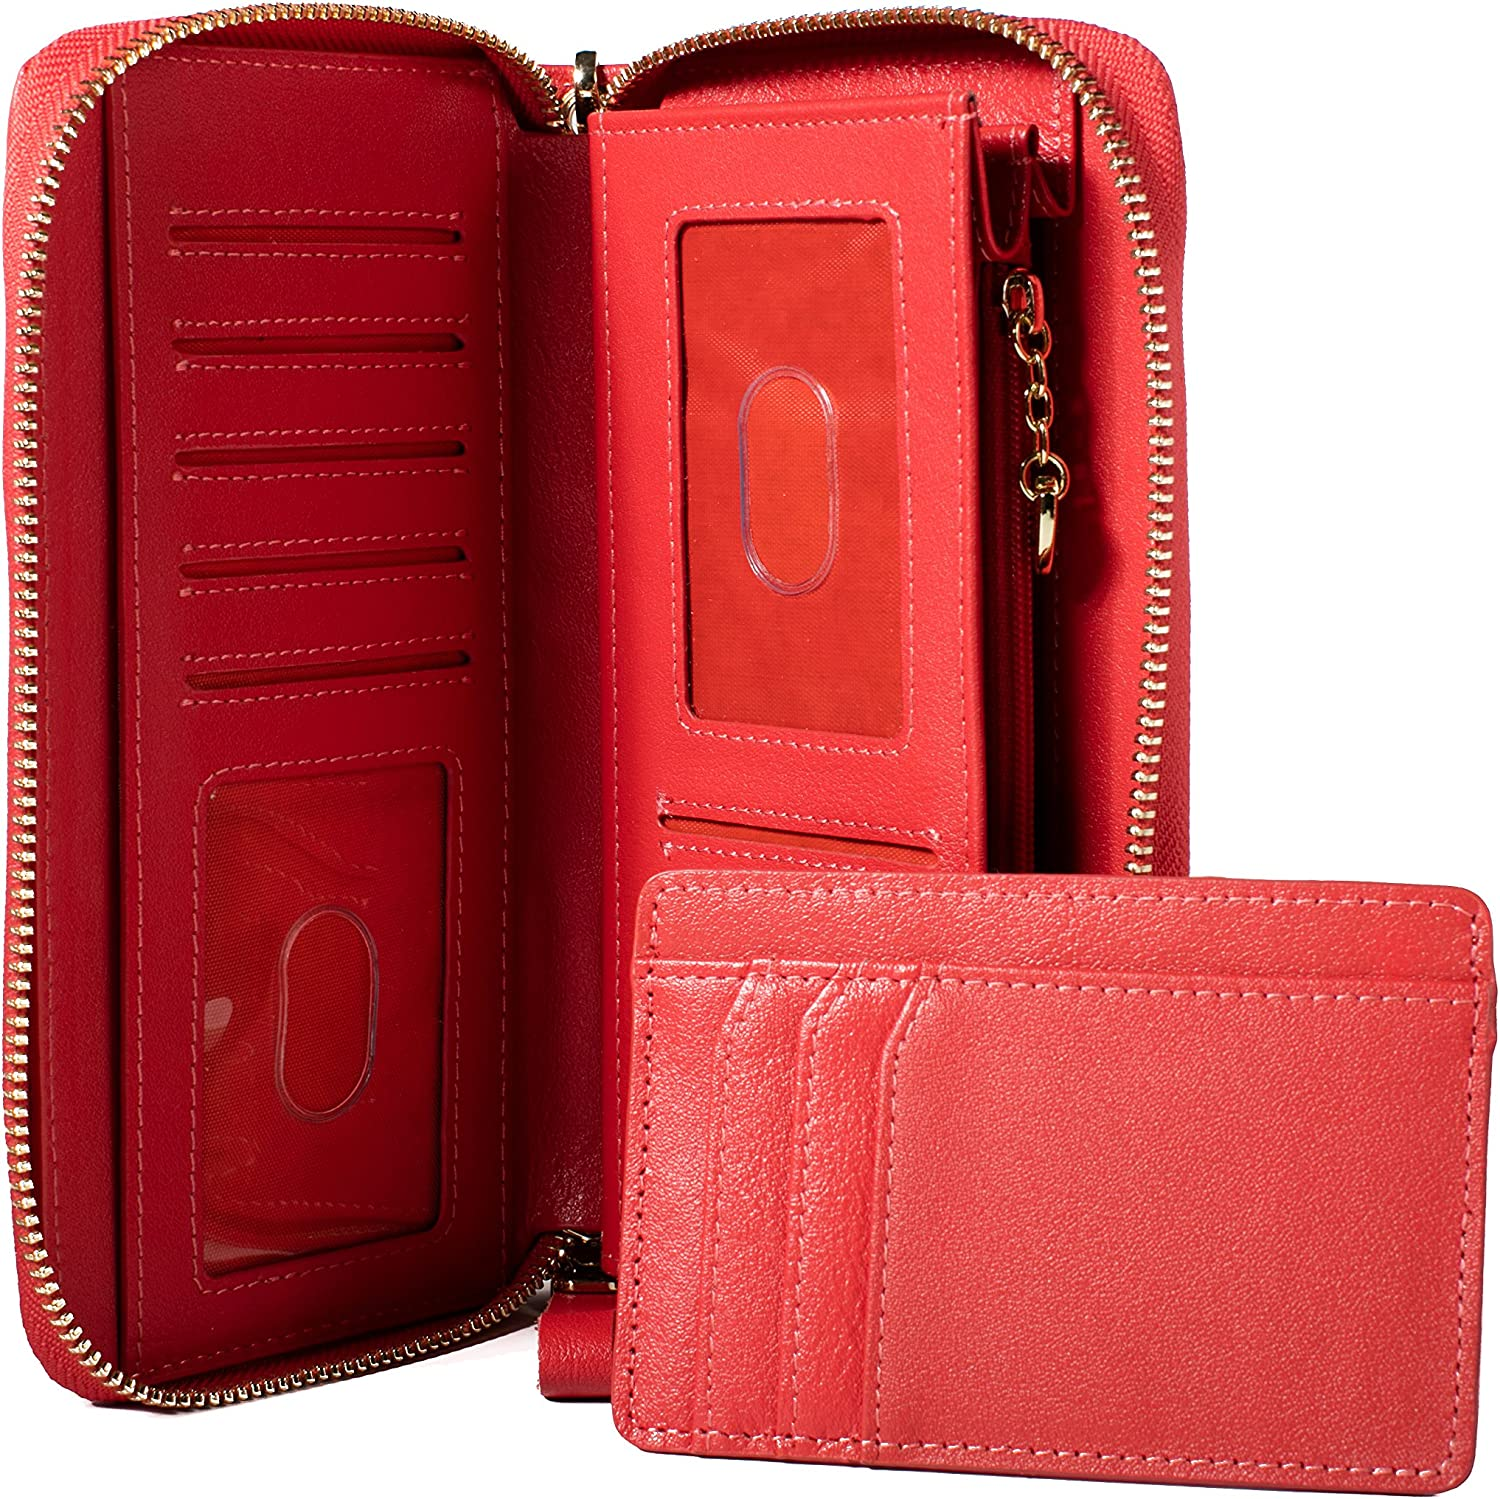 Stunning Quality Leather ID Stronghold Womens RFID Clutch Organizer with Zip Around and bonus matching mini wallet